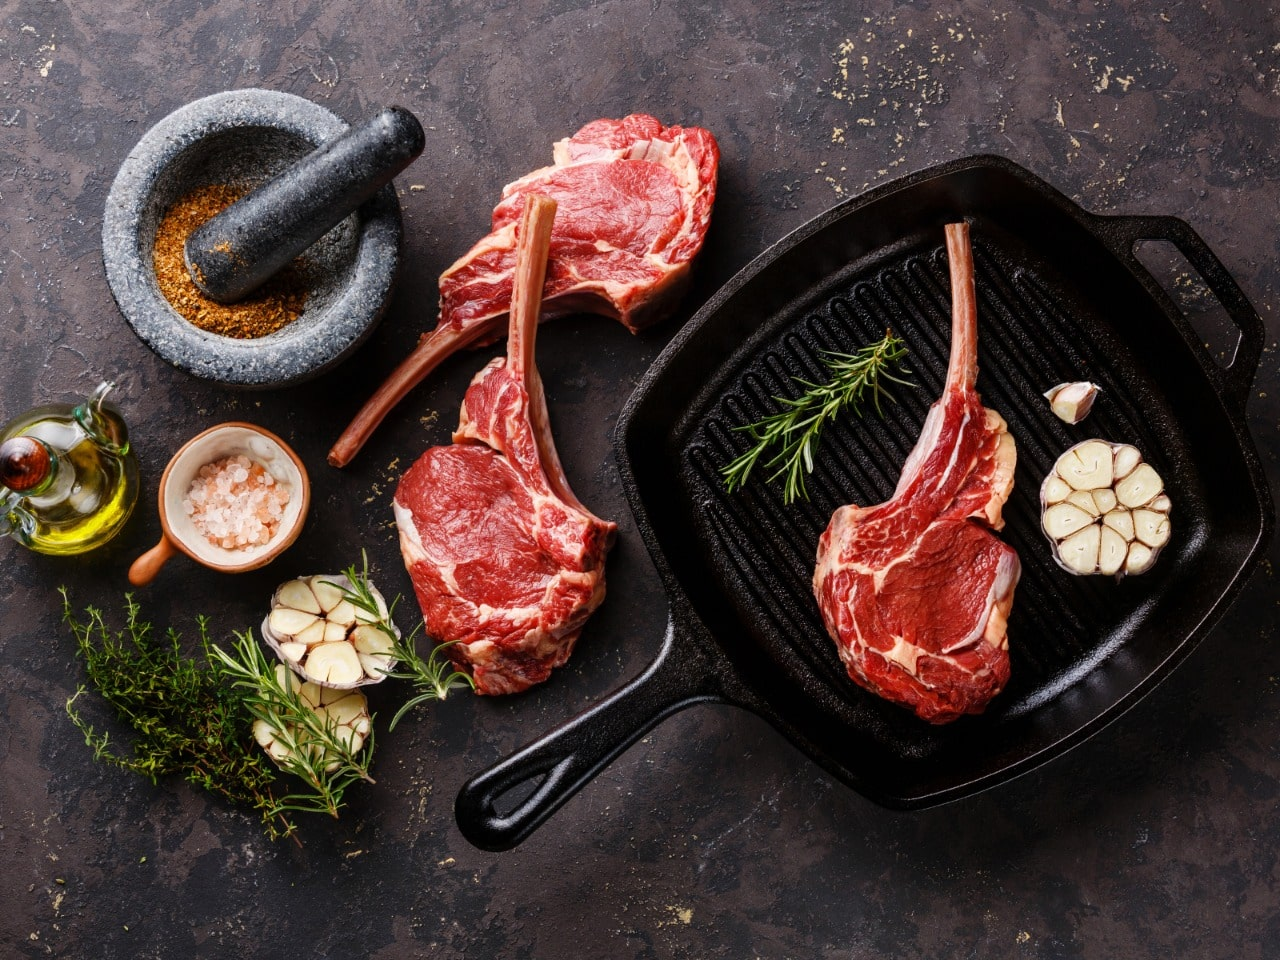 3 Things I've Learned From Working At A Butcher Shop - Beck & Bulow